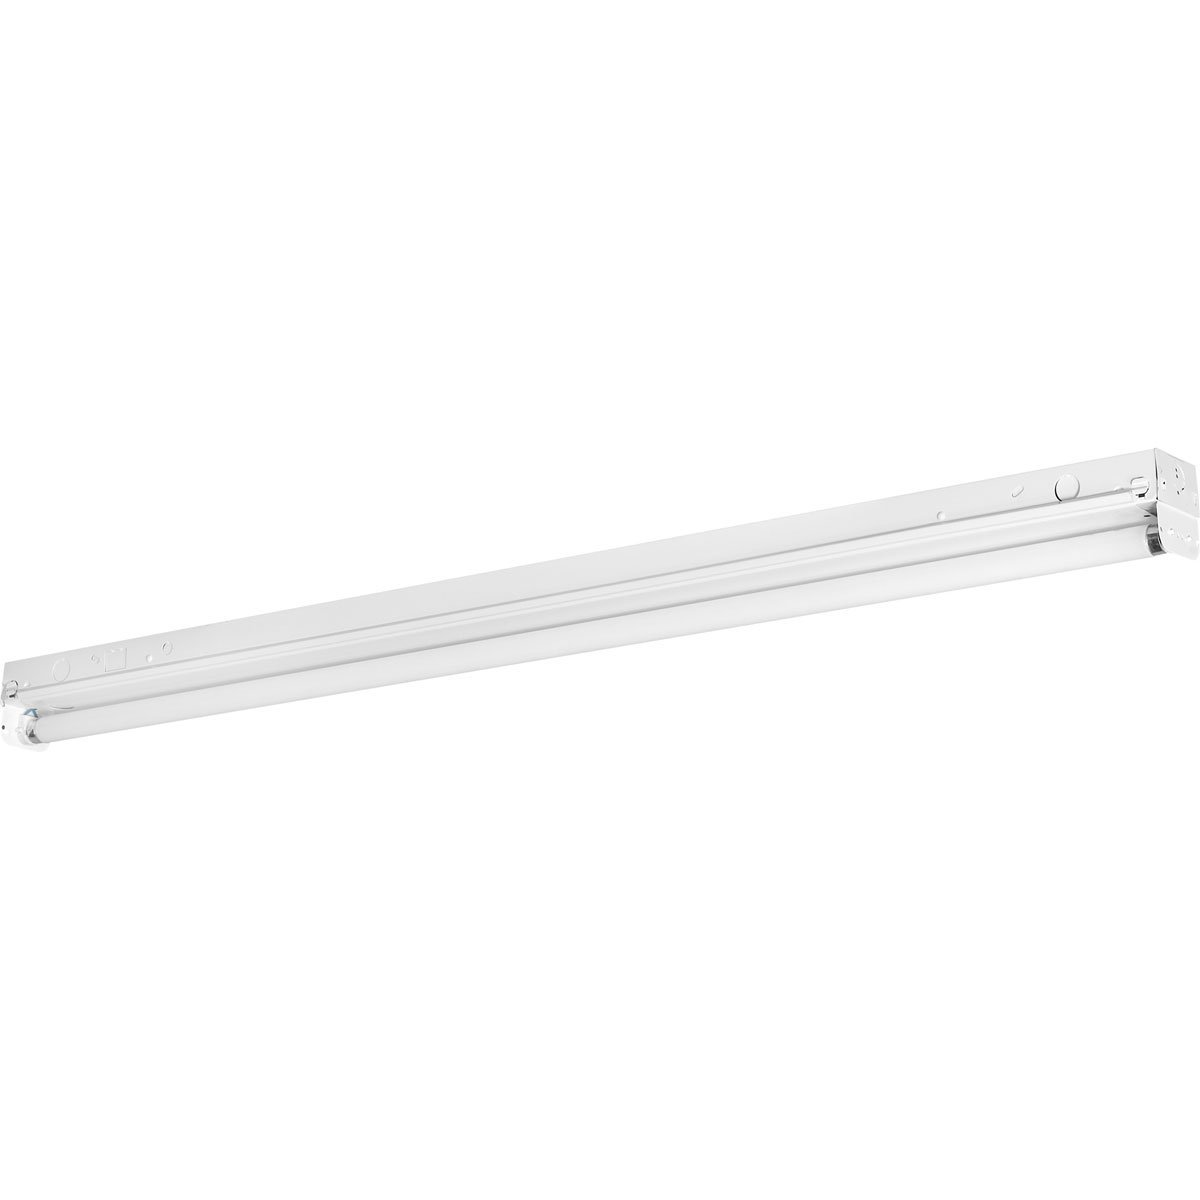 Lupo 128 Spare Color Filter Holder for Striplight Fluorescent Lights